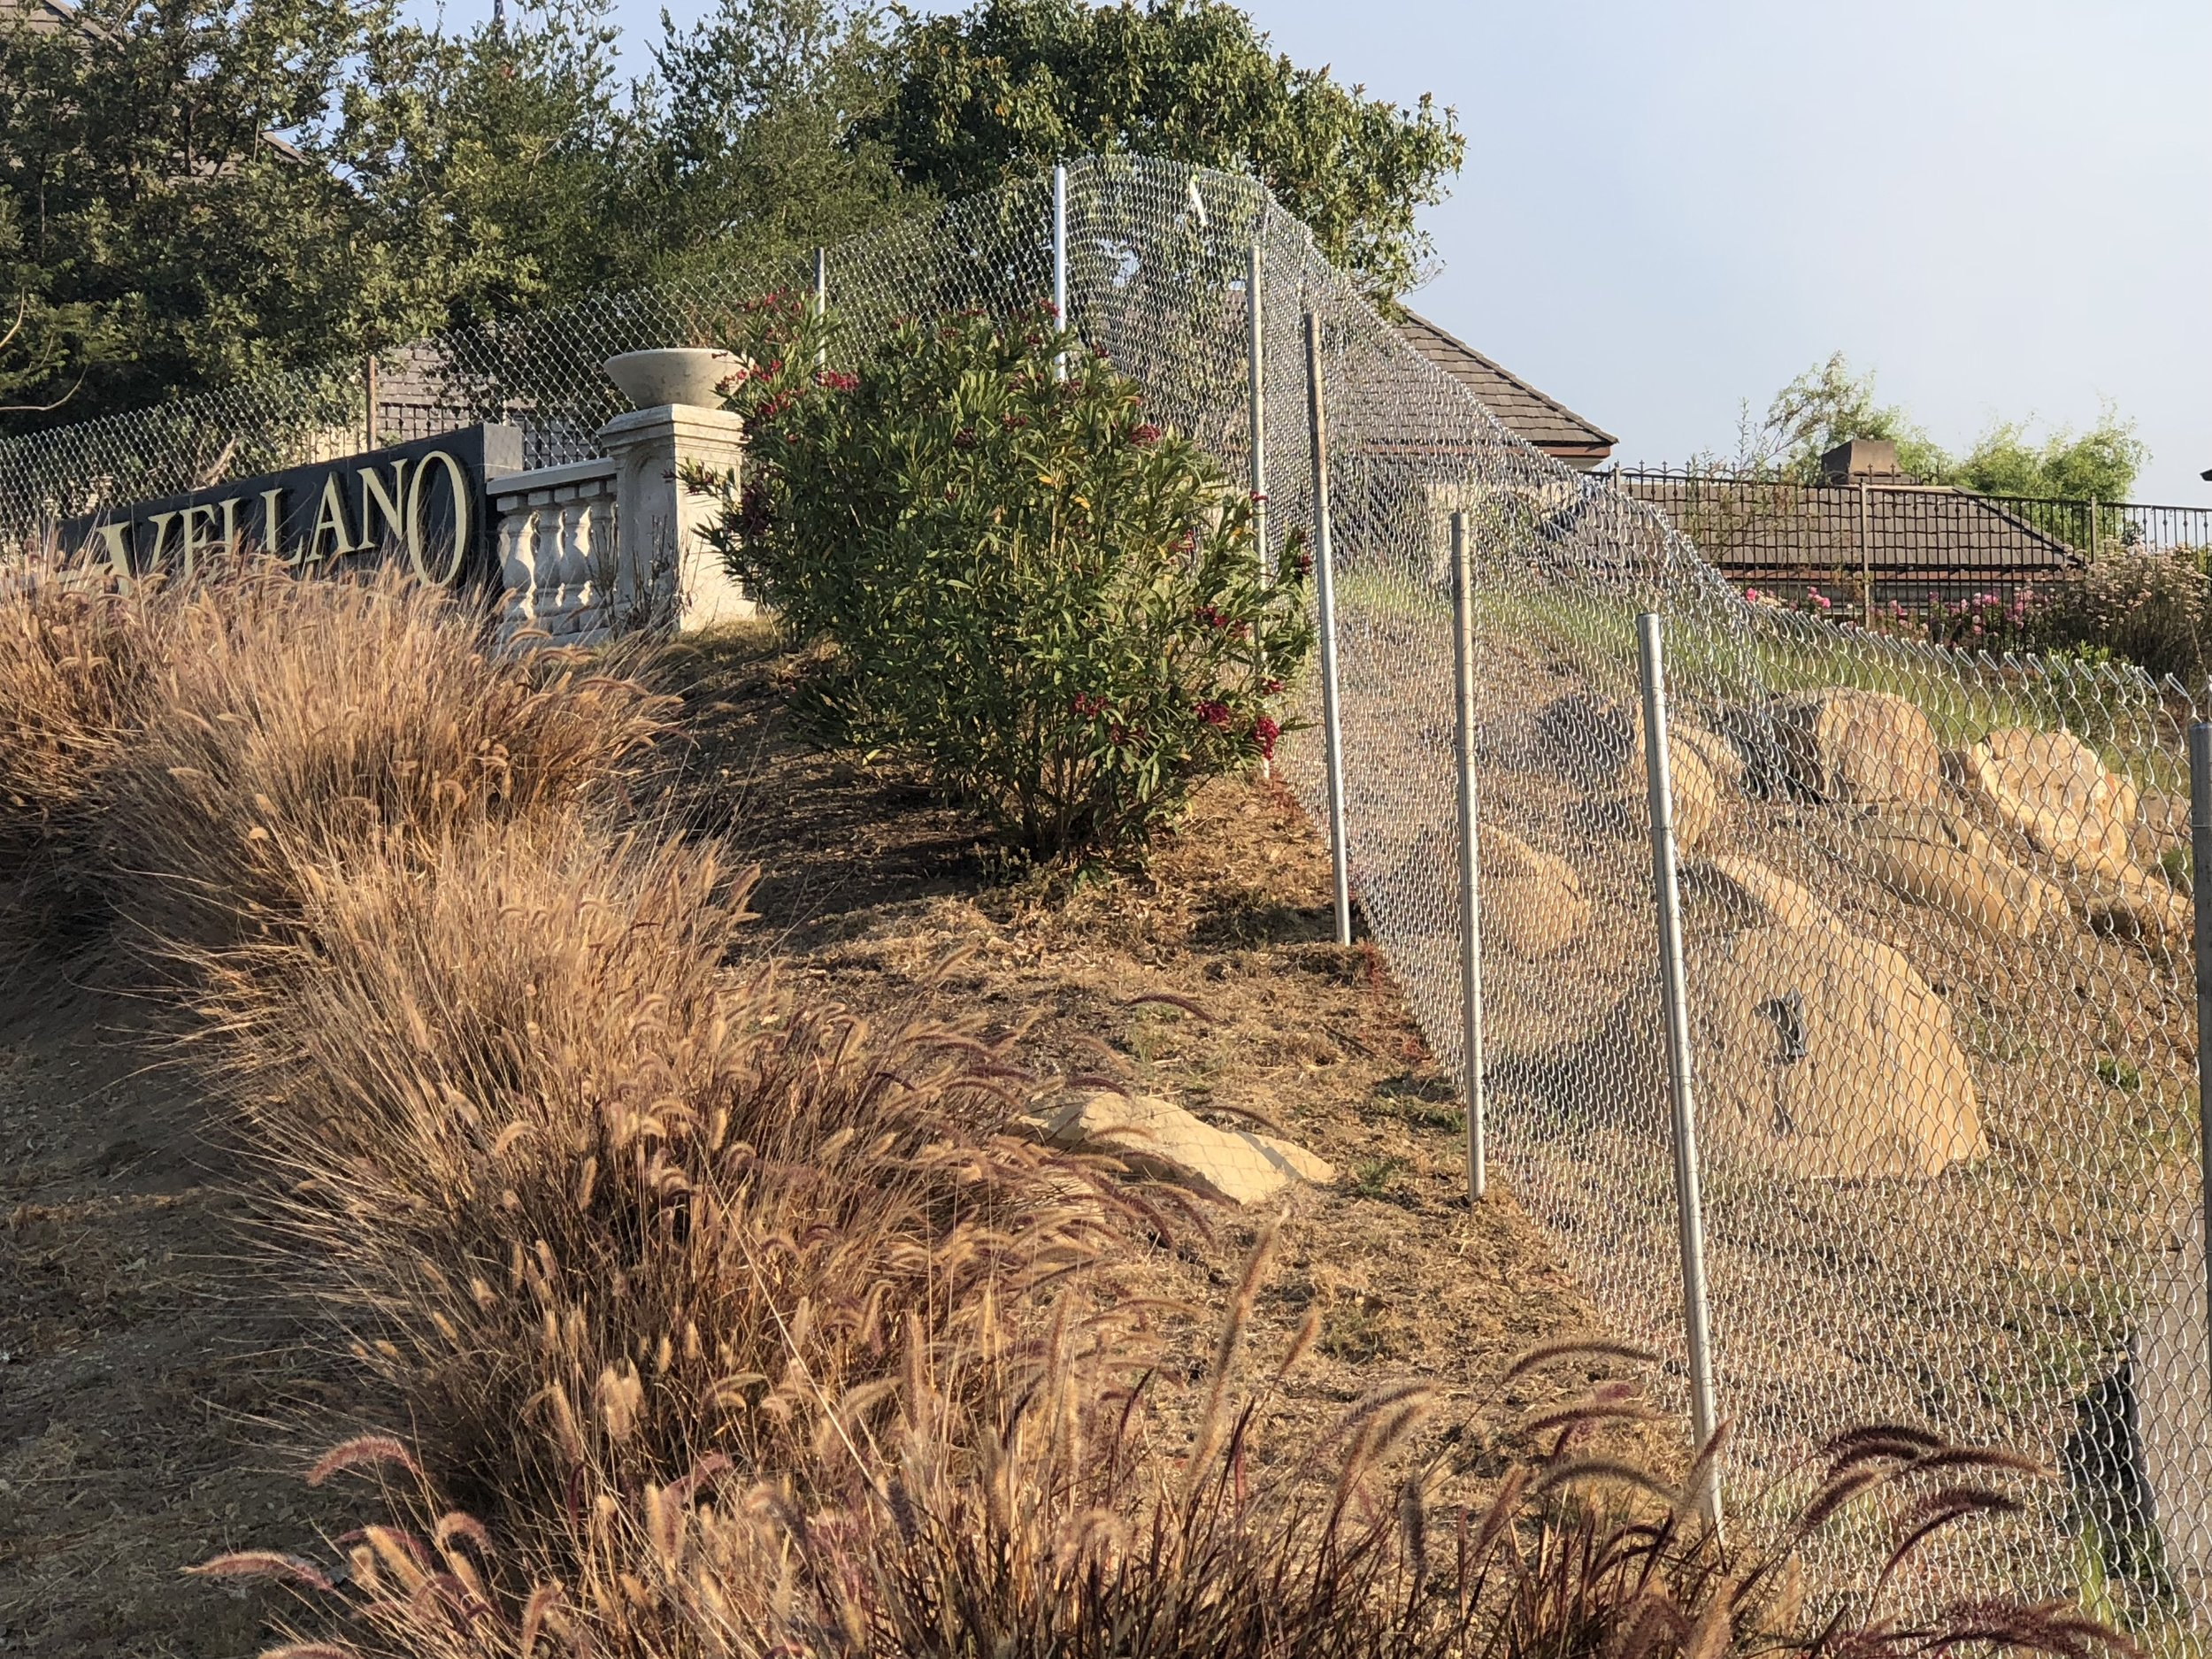 miles of un-permitted chainlink fencing installed by WGP's Bobby Heath and michael Schlesinger 16 months after purchase of the vellano golf course